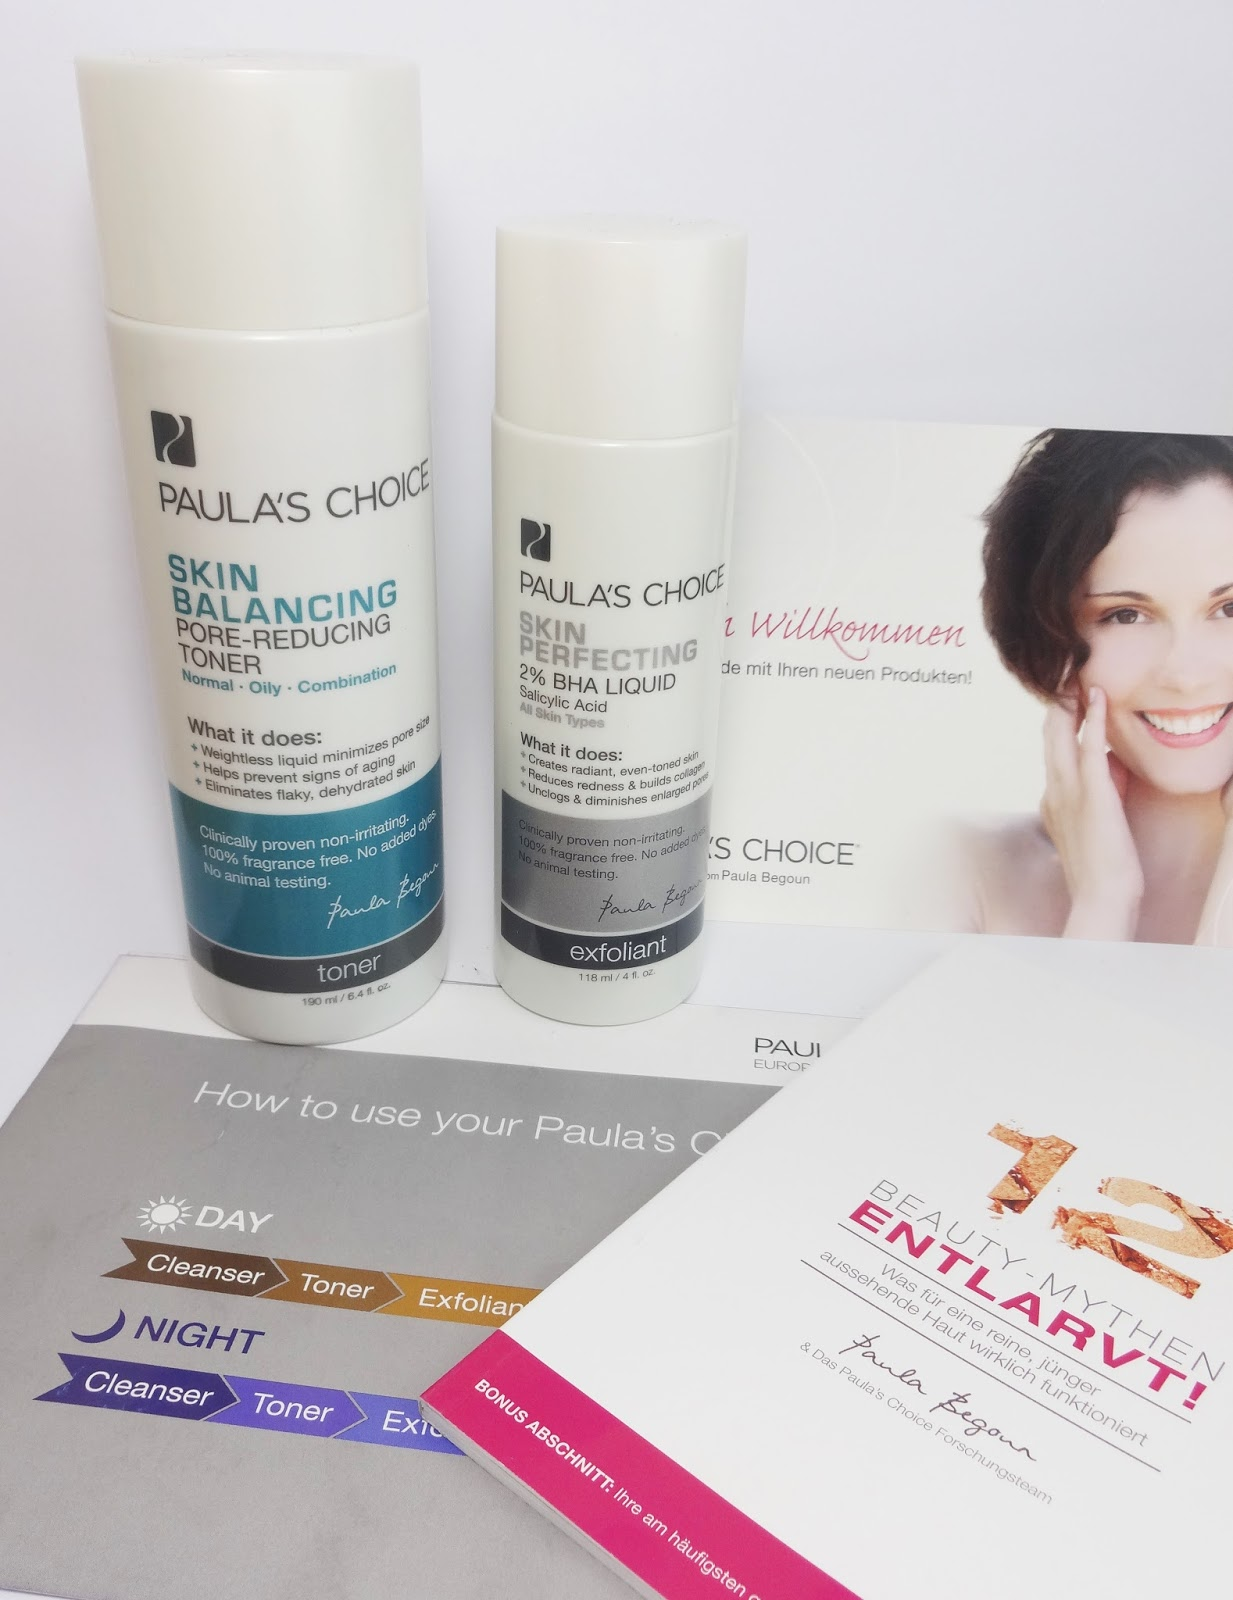 Paula's Choice - Skin Perfecting 2% BHA Liquid & Skin Balancing Pore-Reducing Toner Shopping Haul Pretty Clover Beautyblog